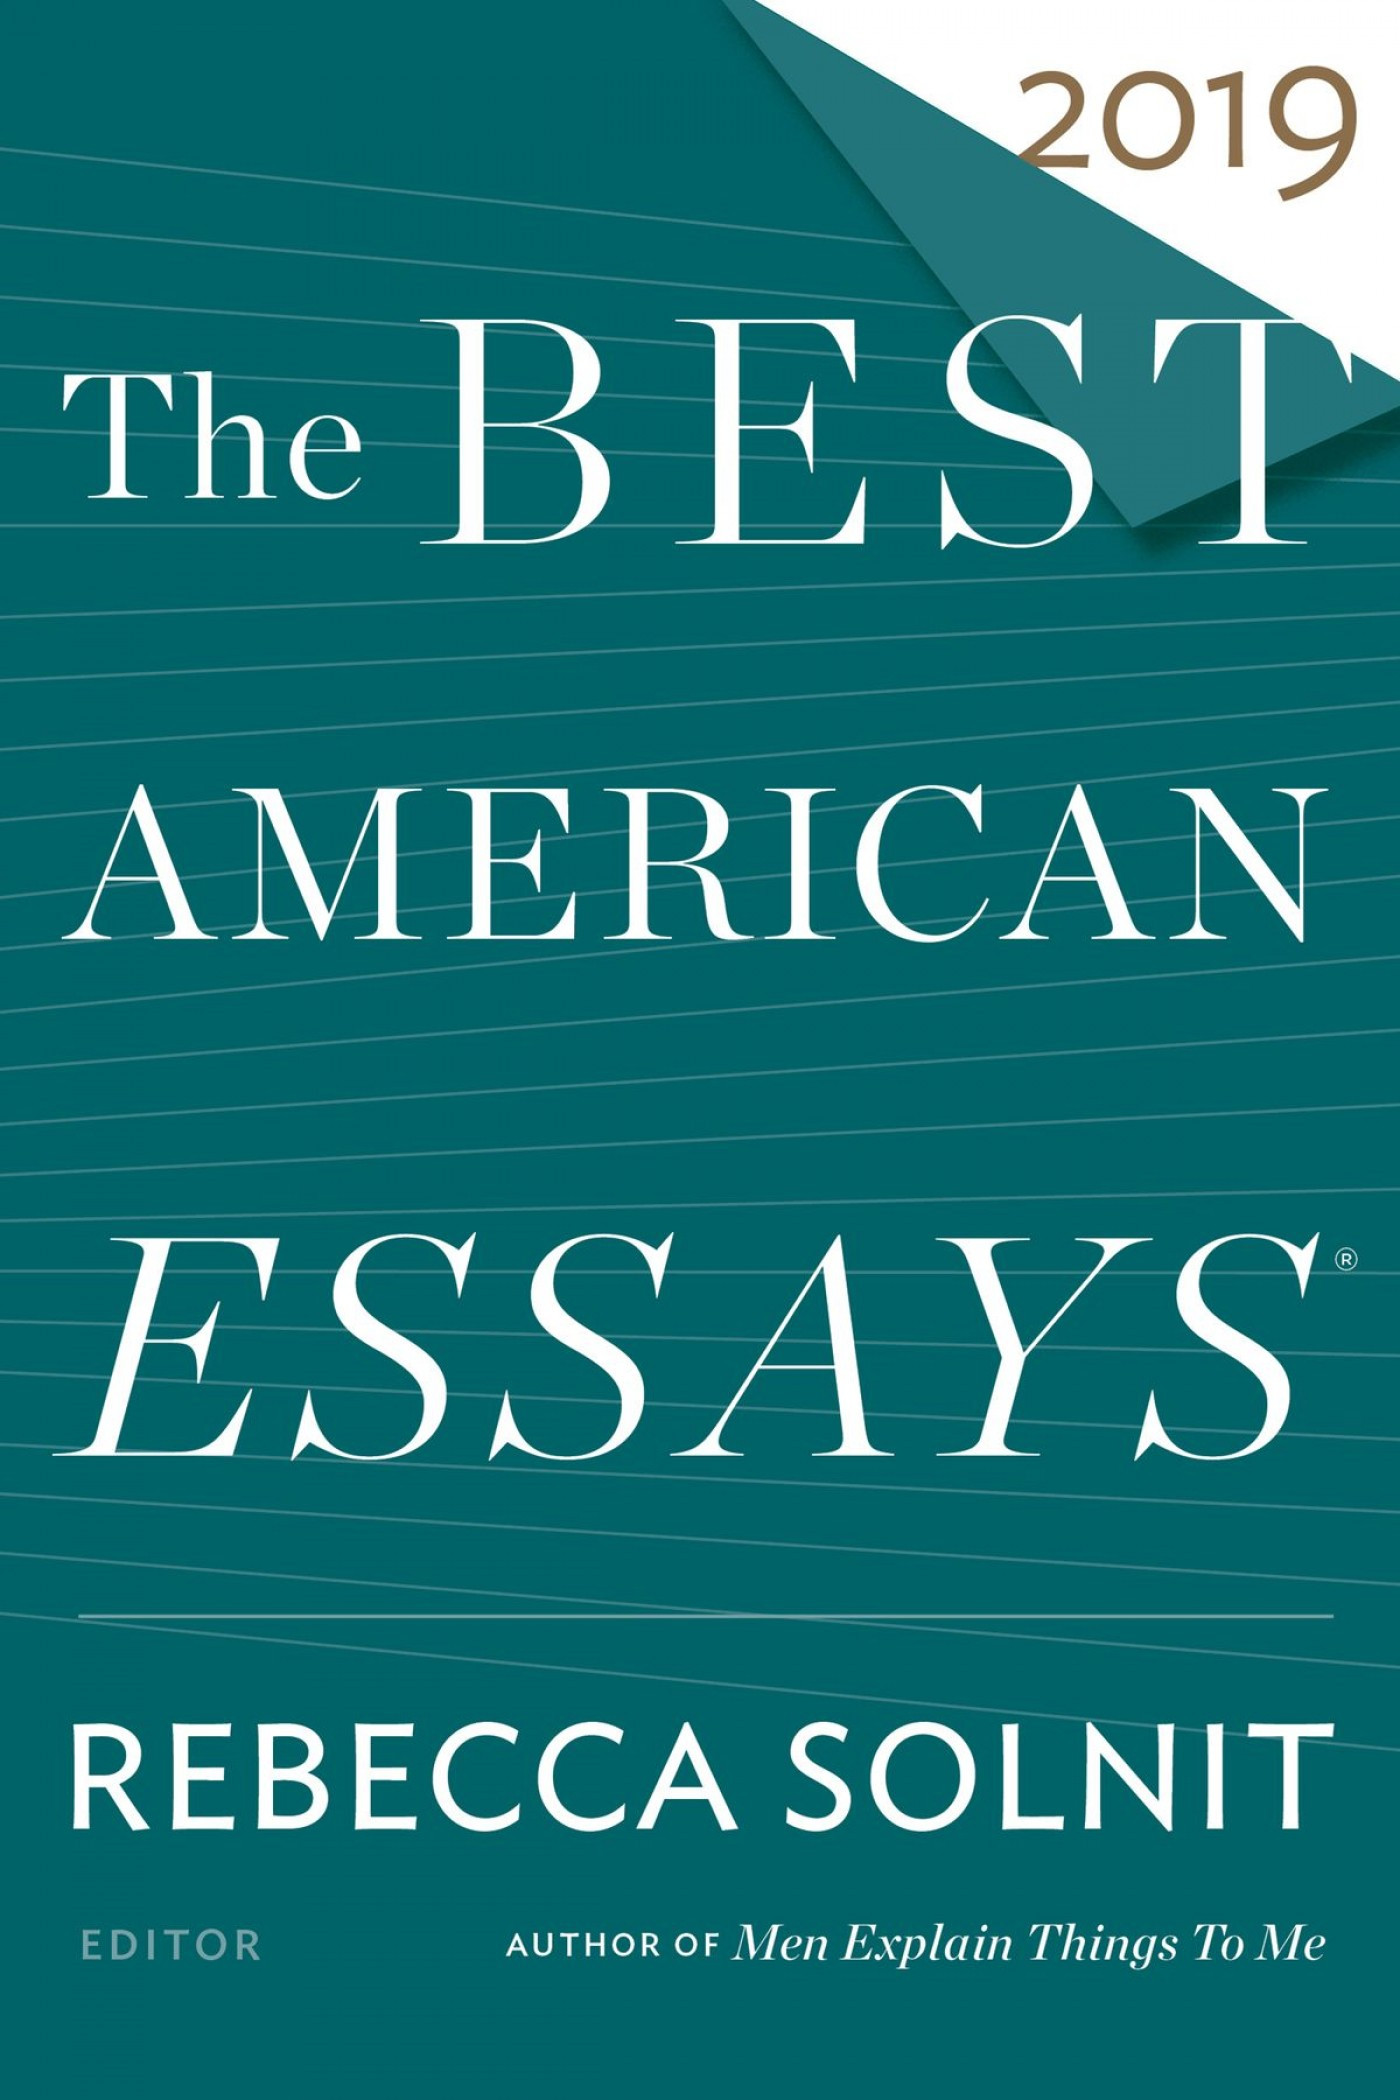 007 The Best American Essays Essay Wonderful 2013 Pdf Download Of Century Sparknotes 2017 1400